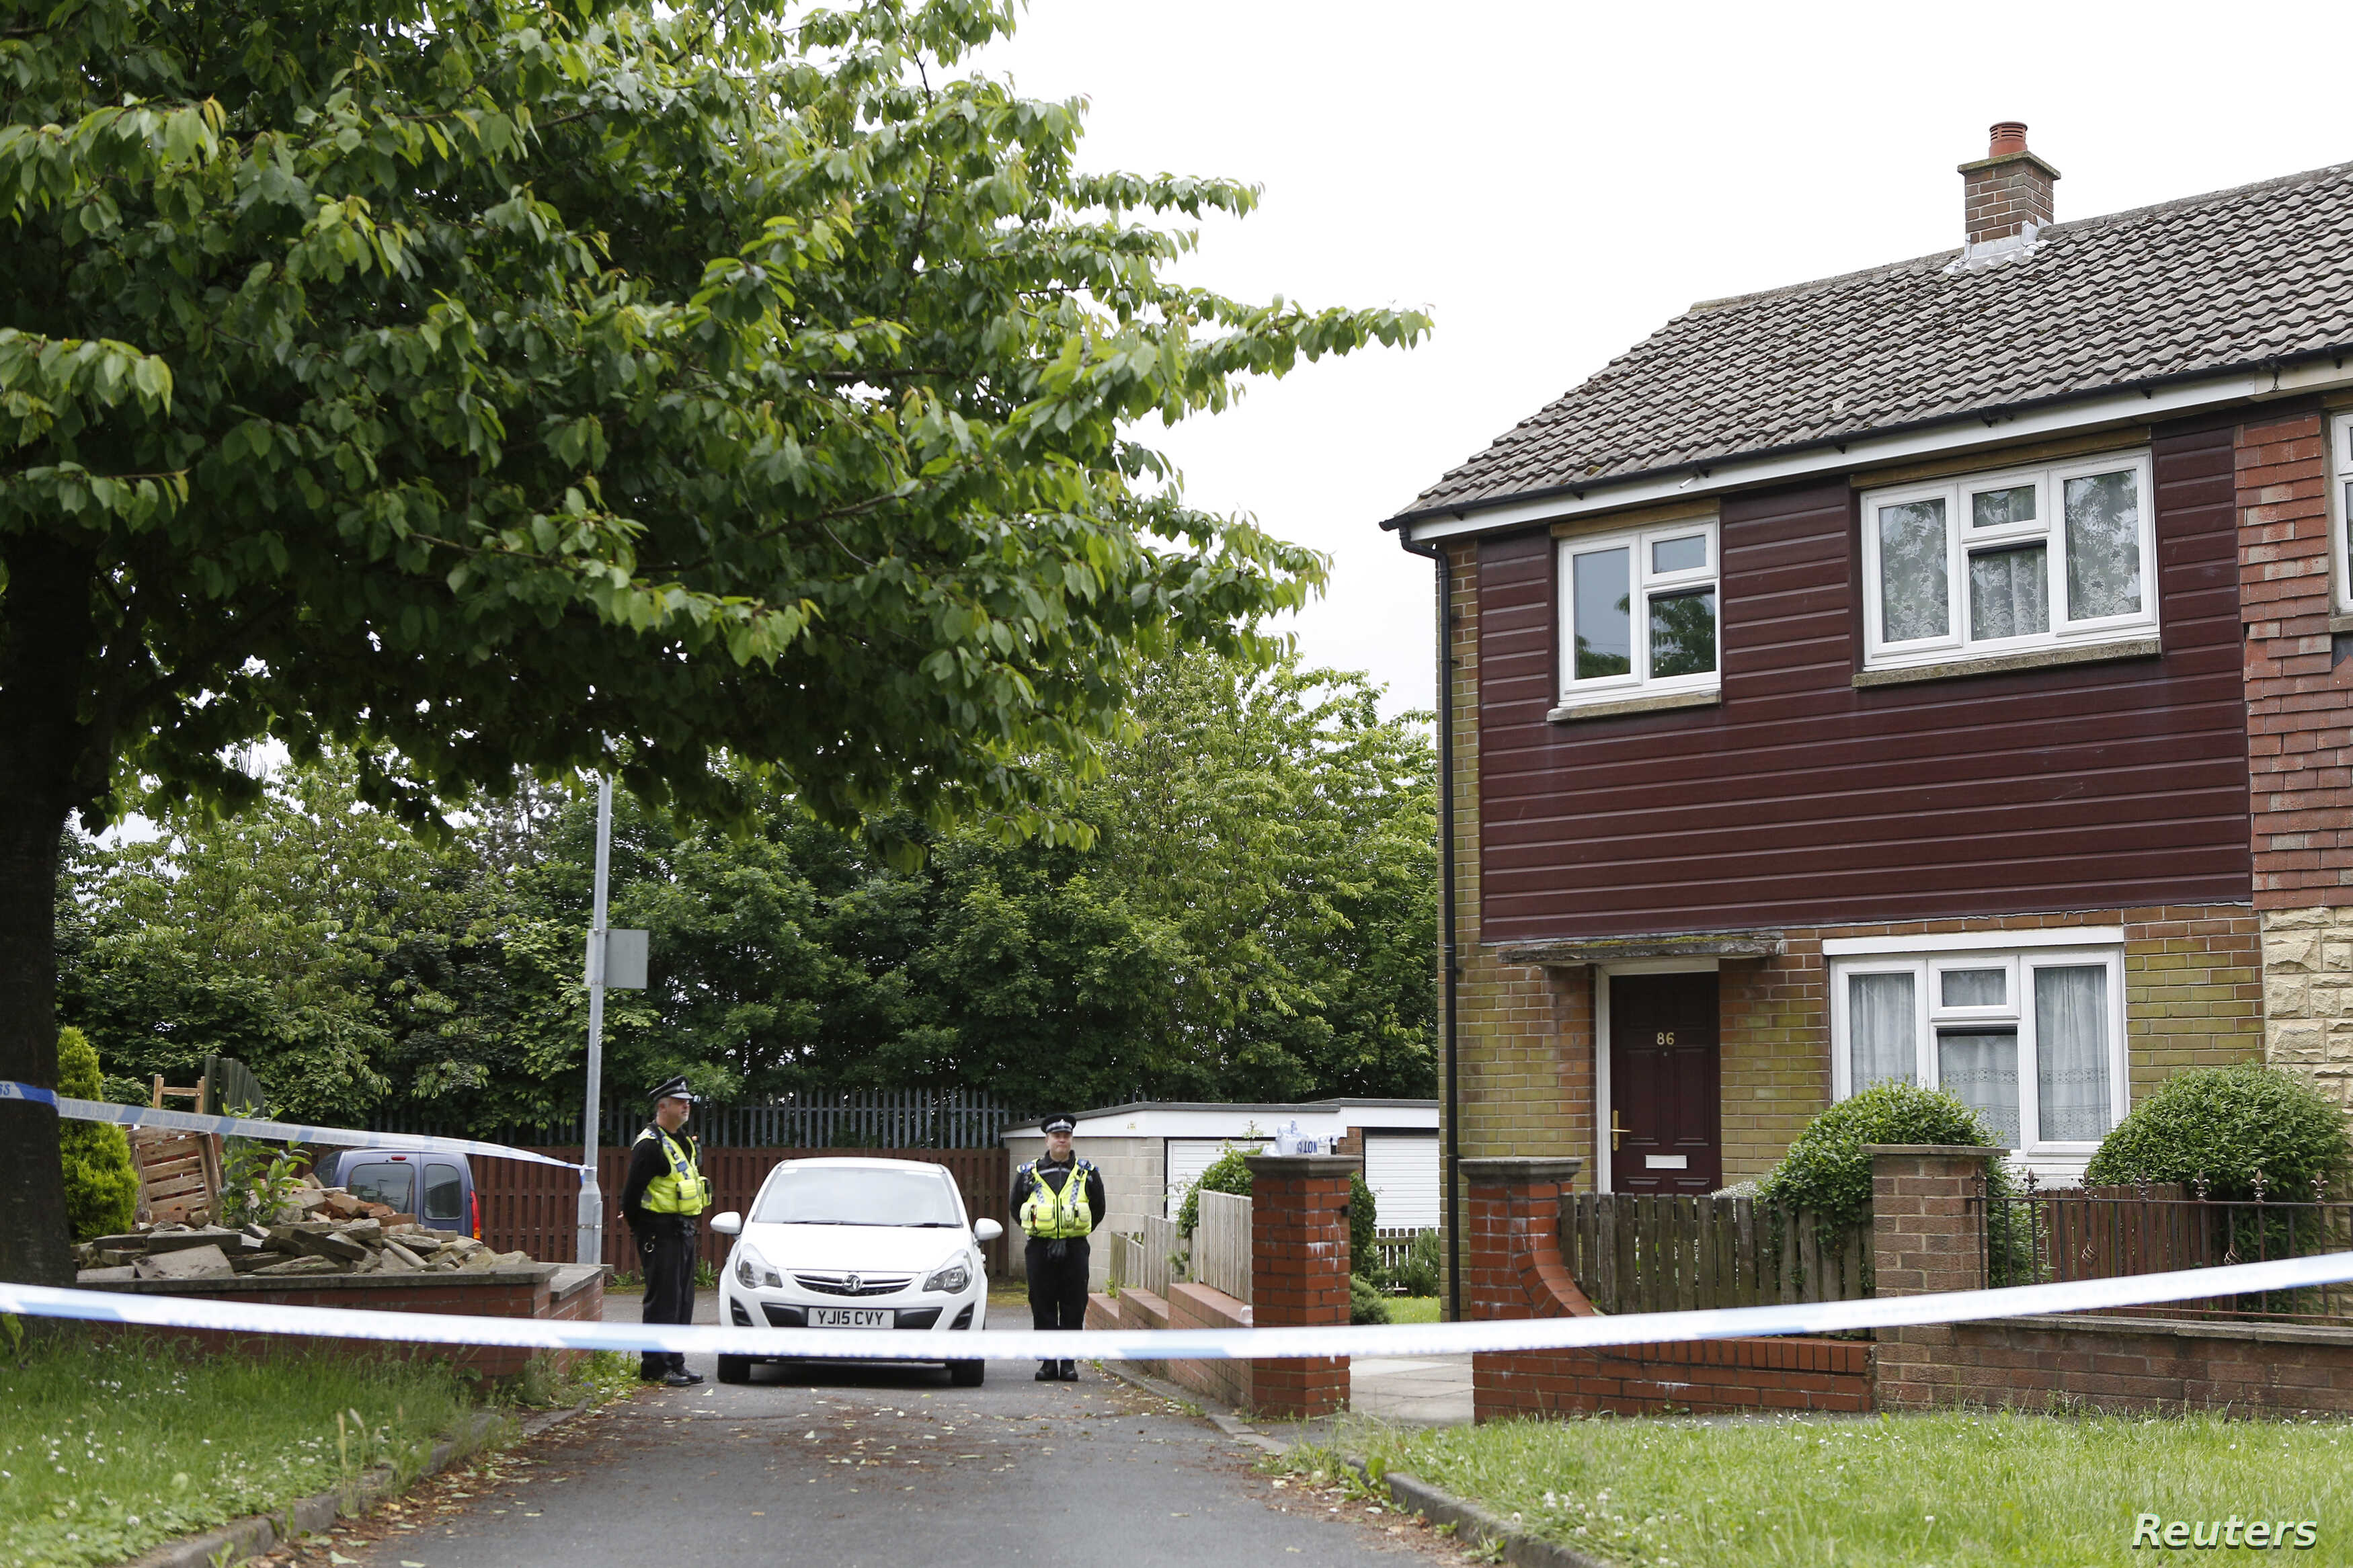 Police officers stand outside the home of Thomas Mair, named by local media as the man who was arrested after Labour MP Jo Cox was murdered in her constituency near Leeds, Britain, June 17, 2016.